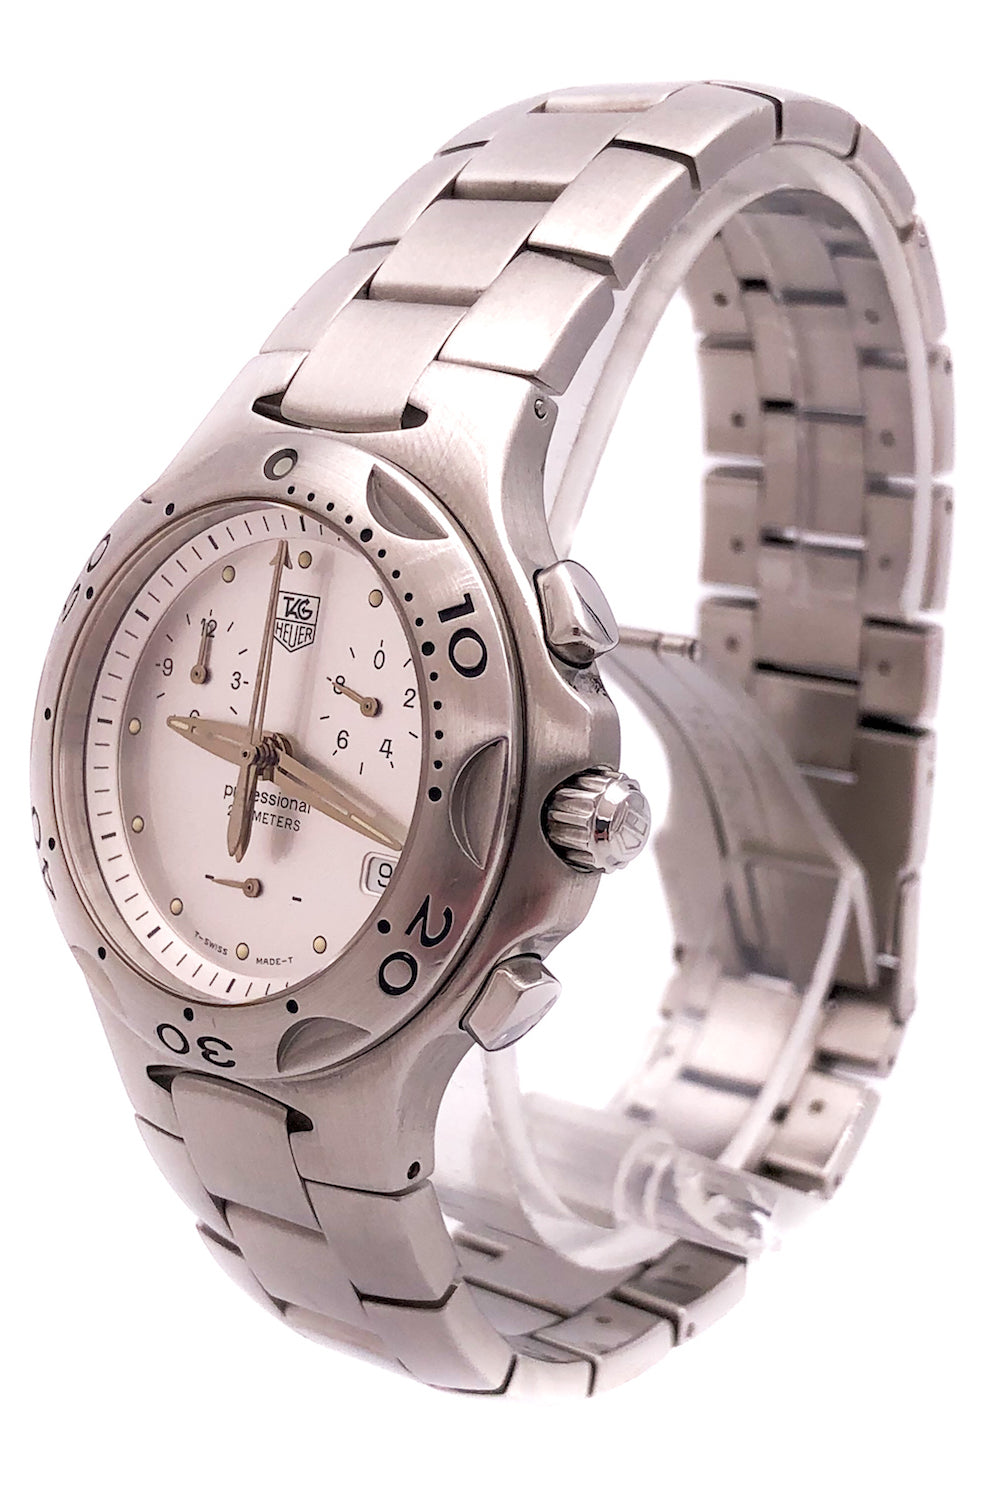 TAG Heuer Kirium Professional Stainless Steel w/ MOP Dial – CL1111